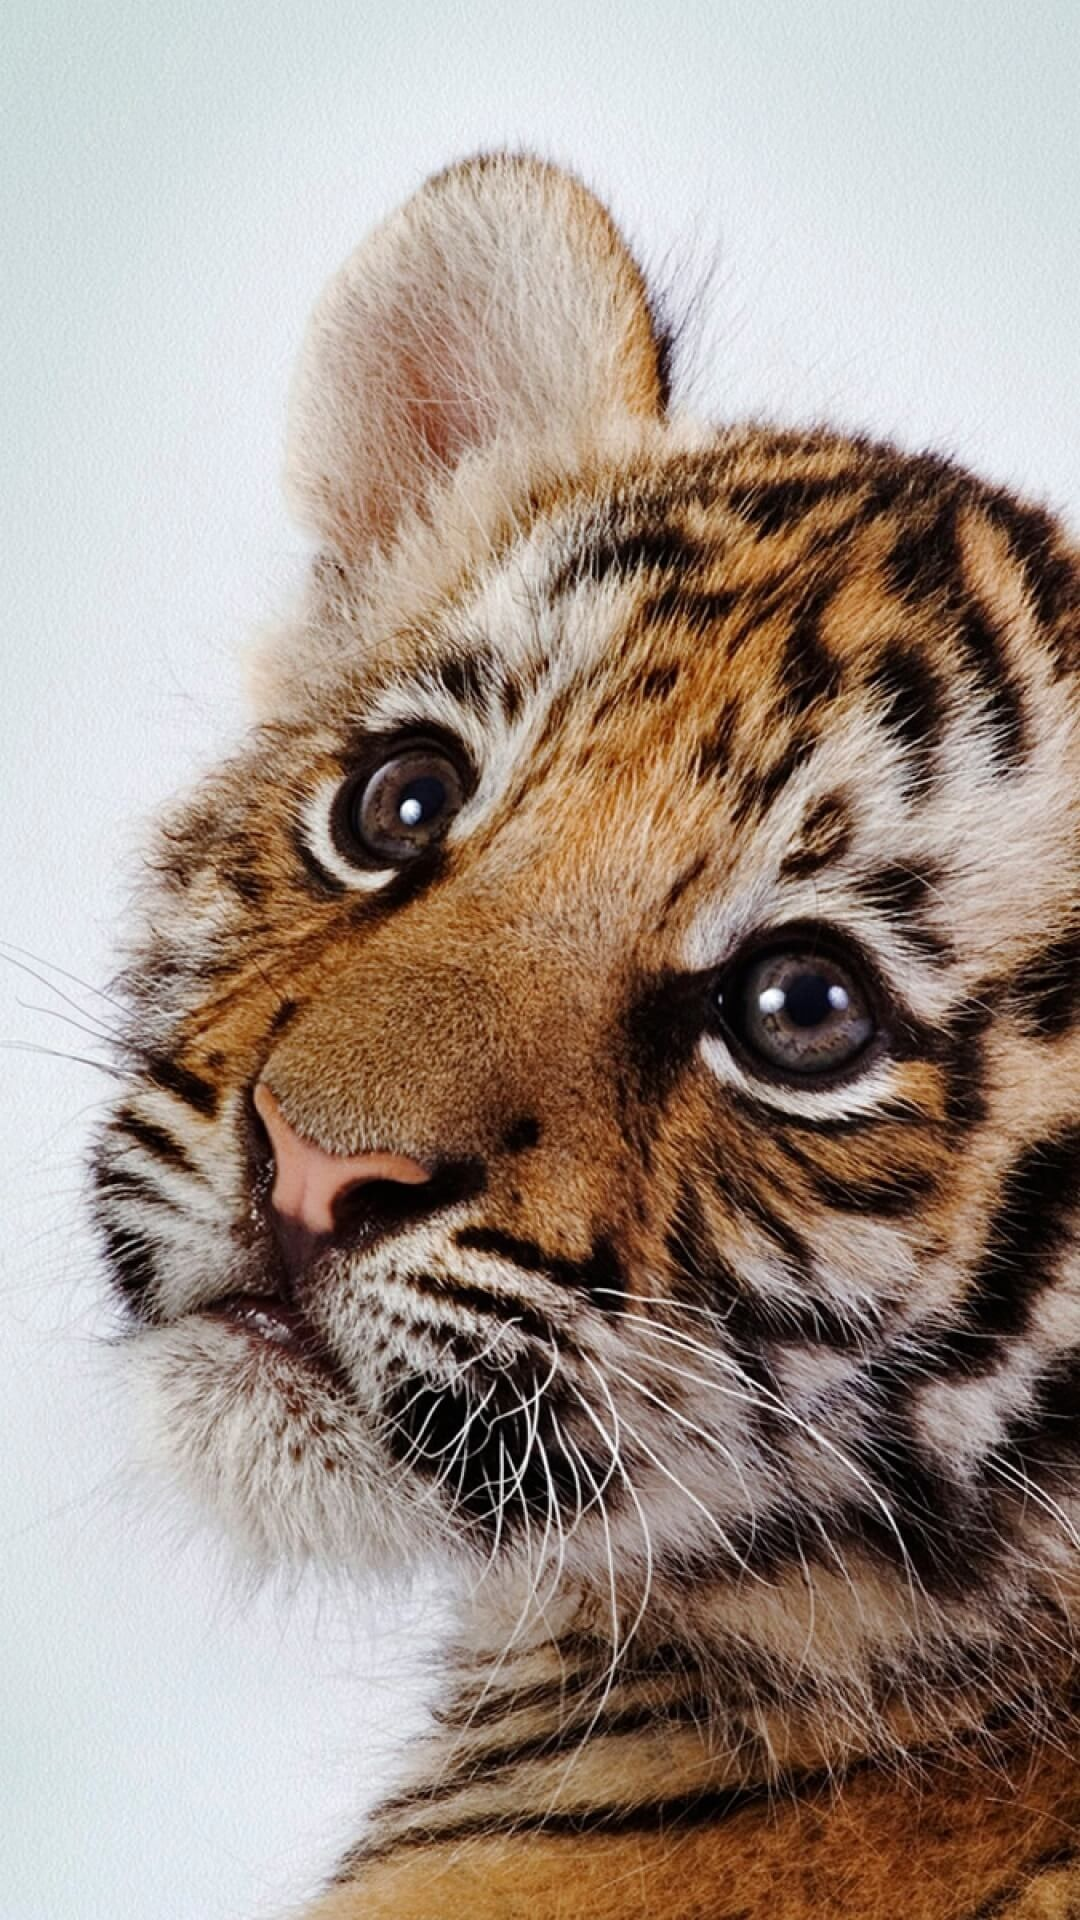 Cubs Iphone Background Hd Wallpaper Android Tiger Wallpaper Tiger Wallpaper Iphone